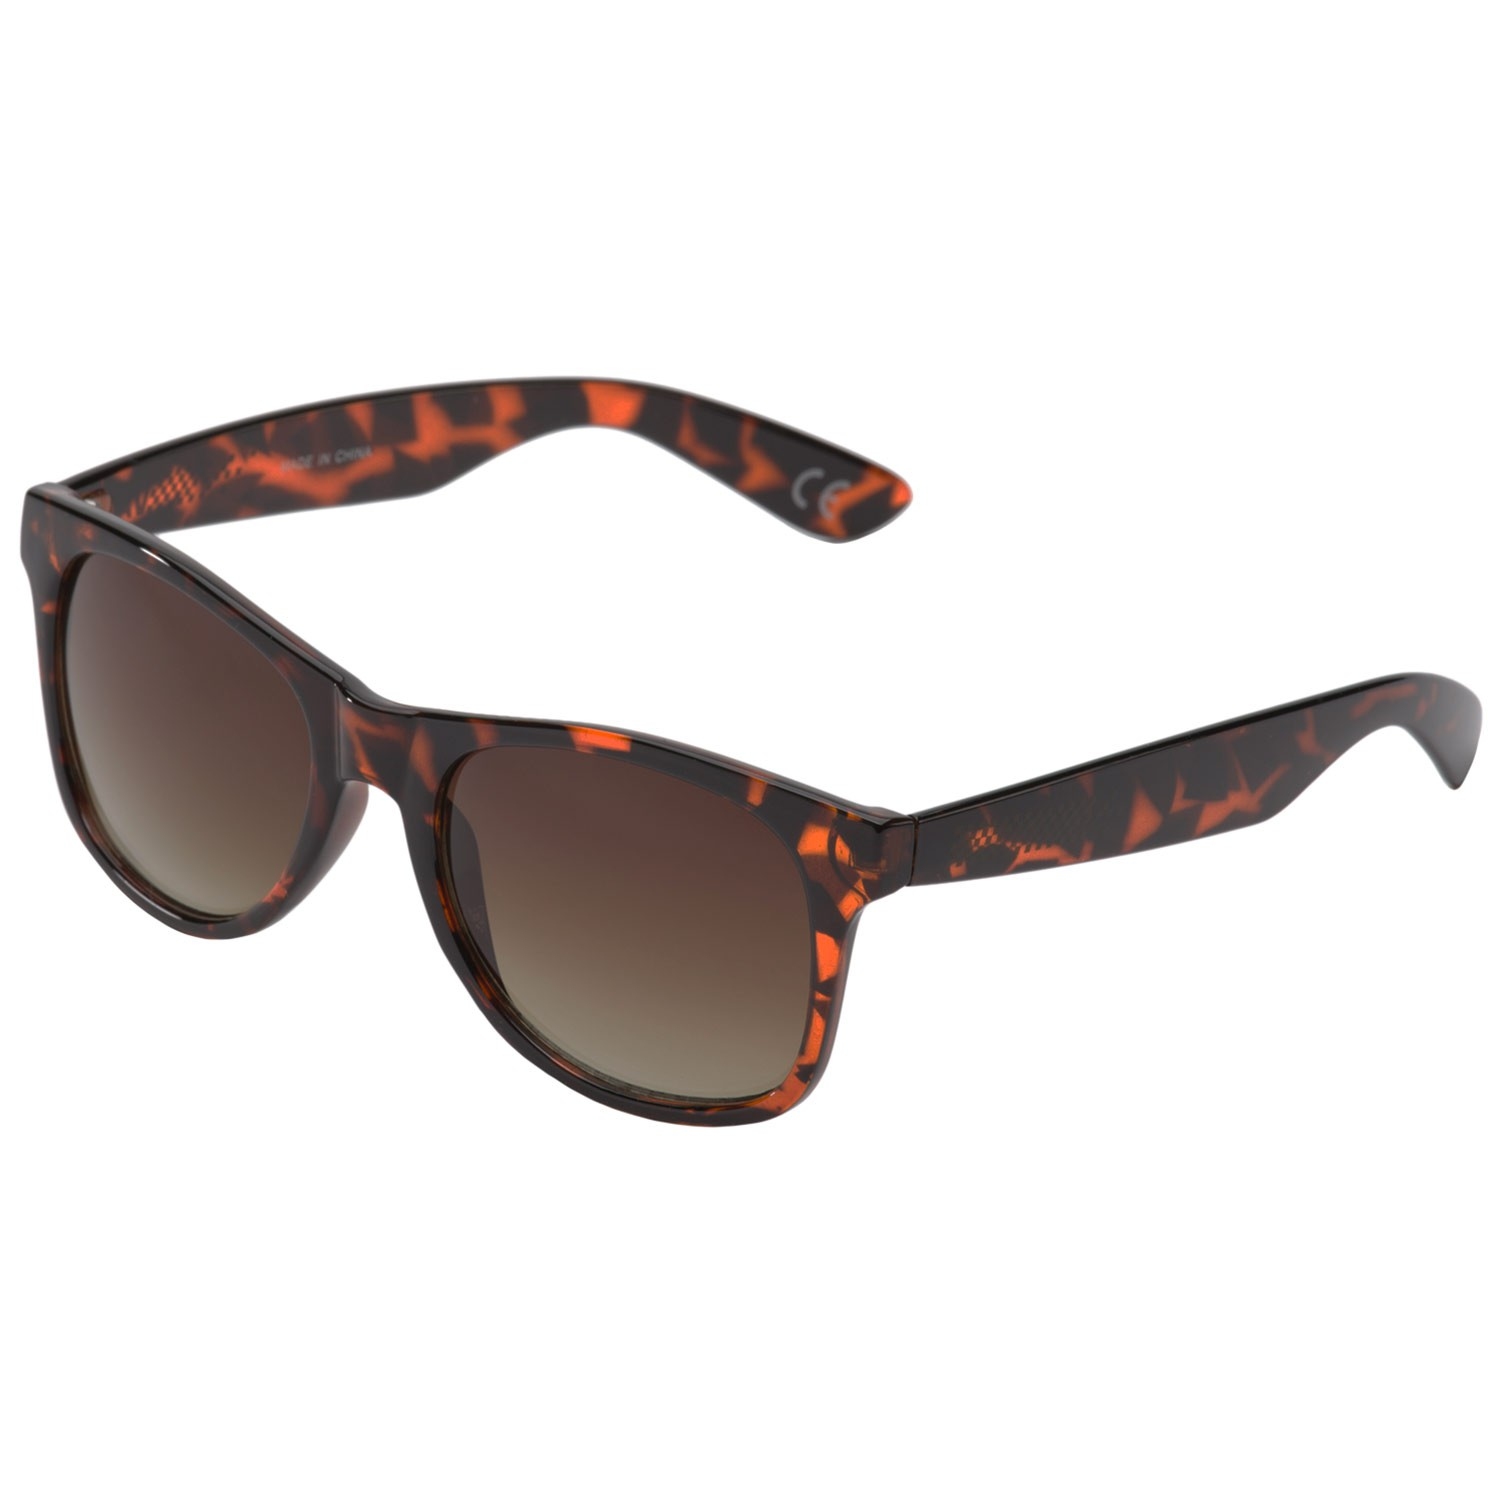 ce27d3503 Vans Spicoli Sunglasses Coffee | United Nations System Chief ...